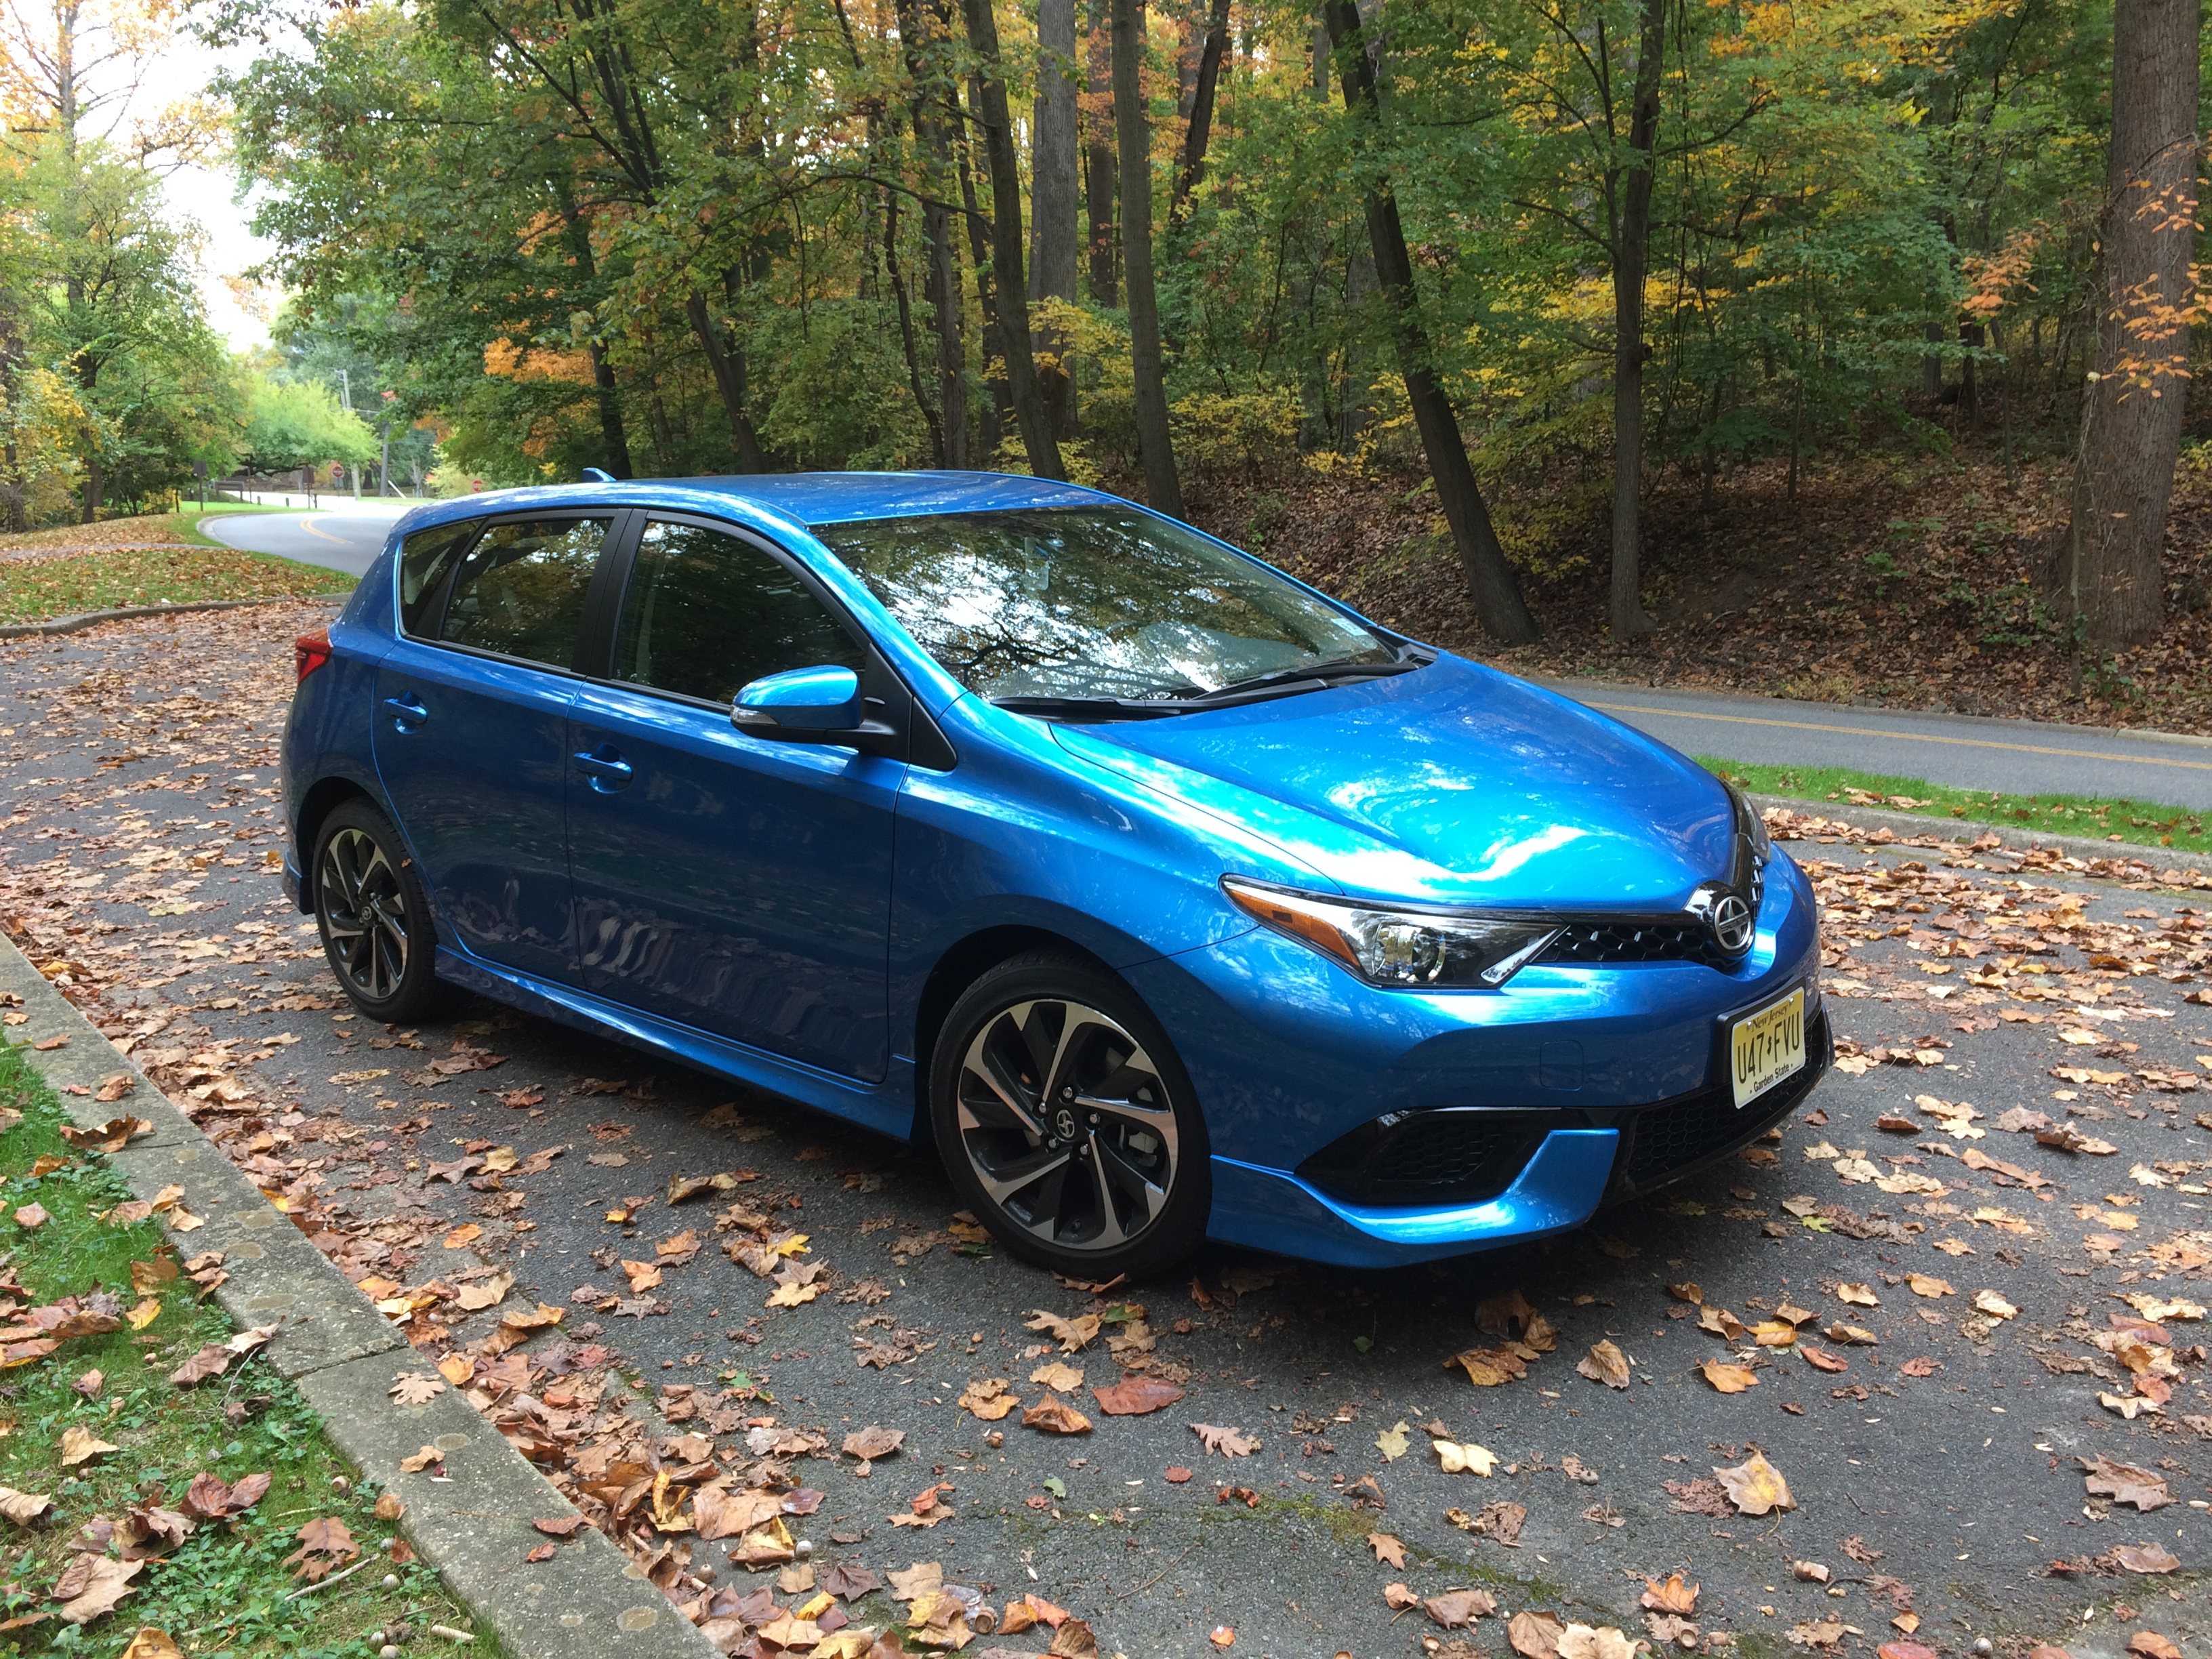 2016 Scion iM: A hatchback trying to breathe new life into the brand